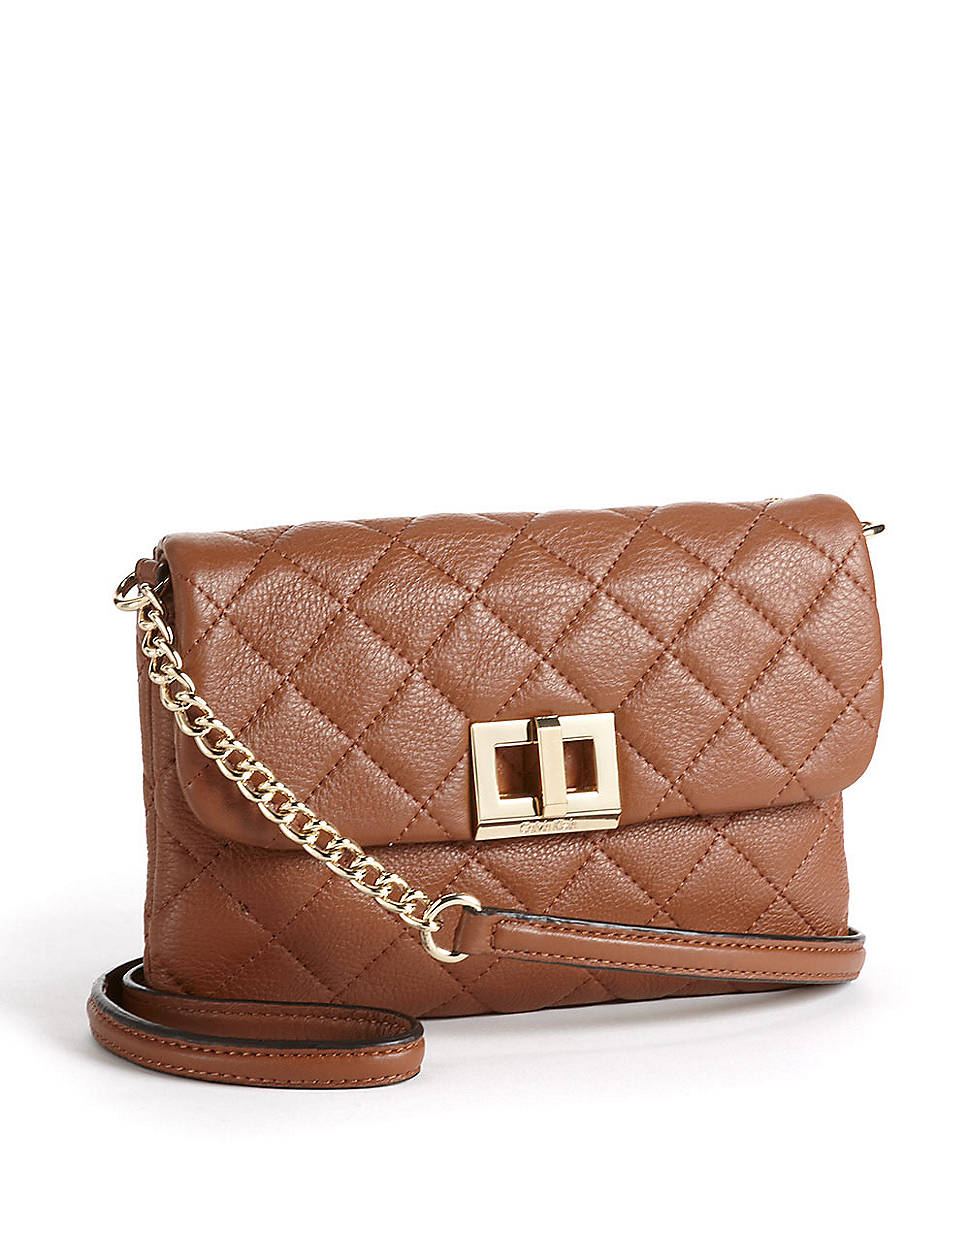 Calvin klein Quilted Leather Crossbody Bag in Natural | Lyst : calvin klein quilted leather crossbody bag - Adamdwight.com